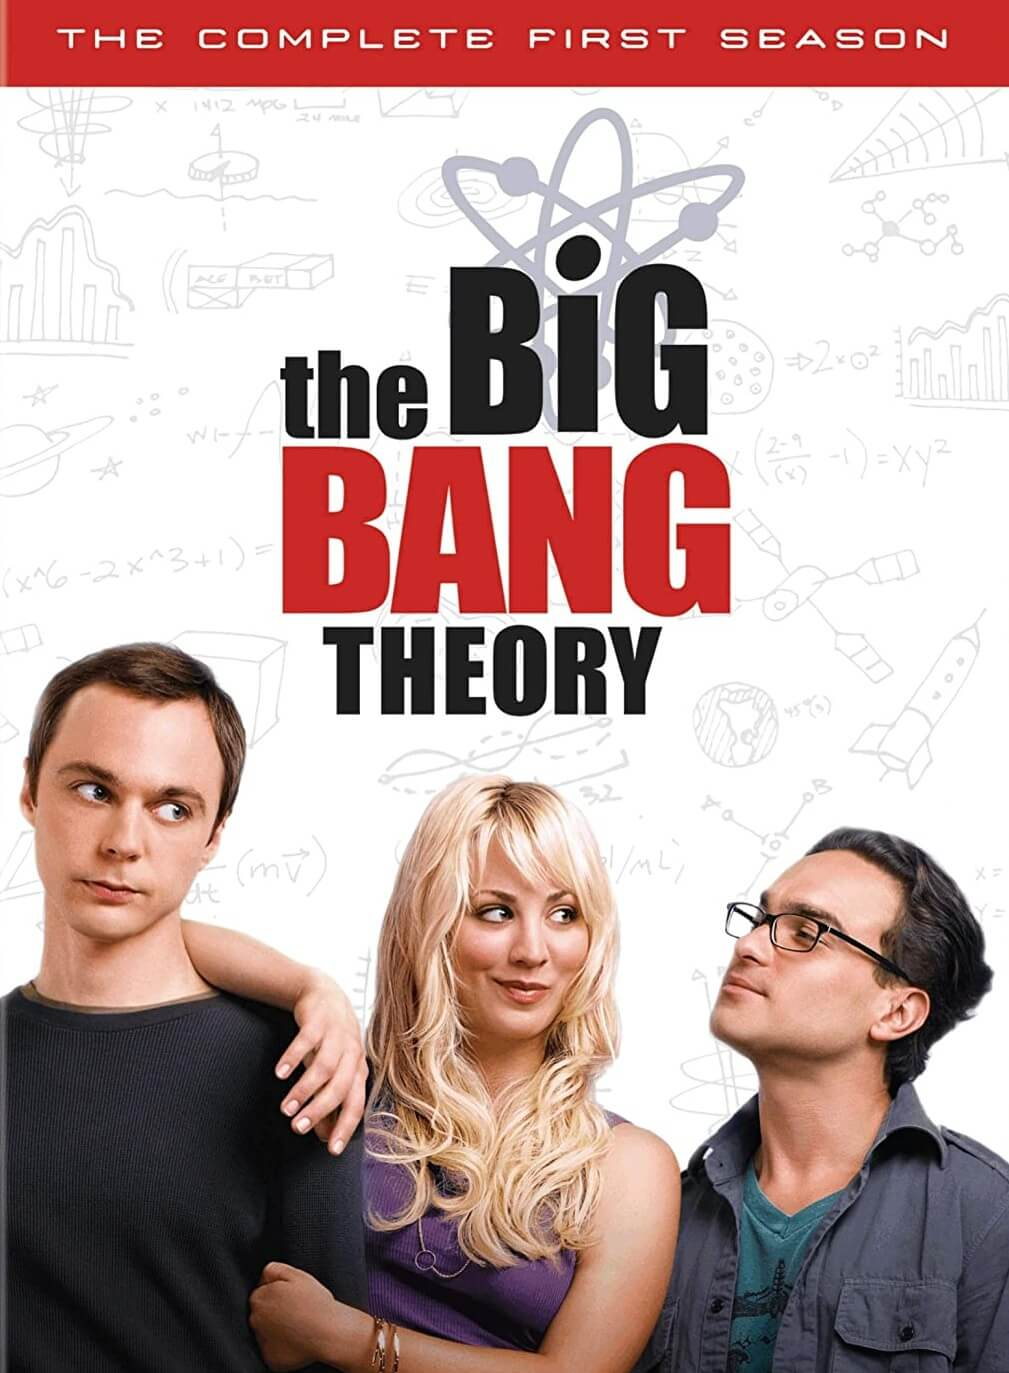 The Big Bang Theory S01 E14